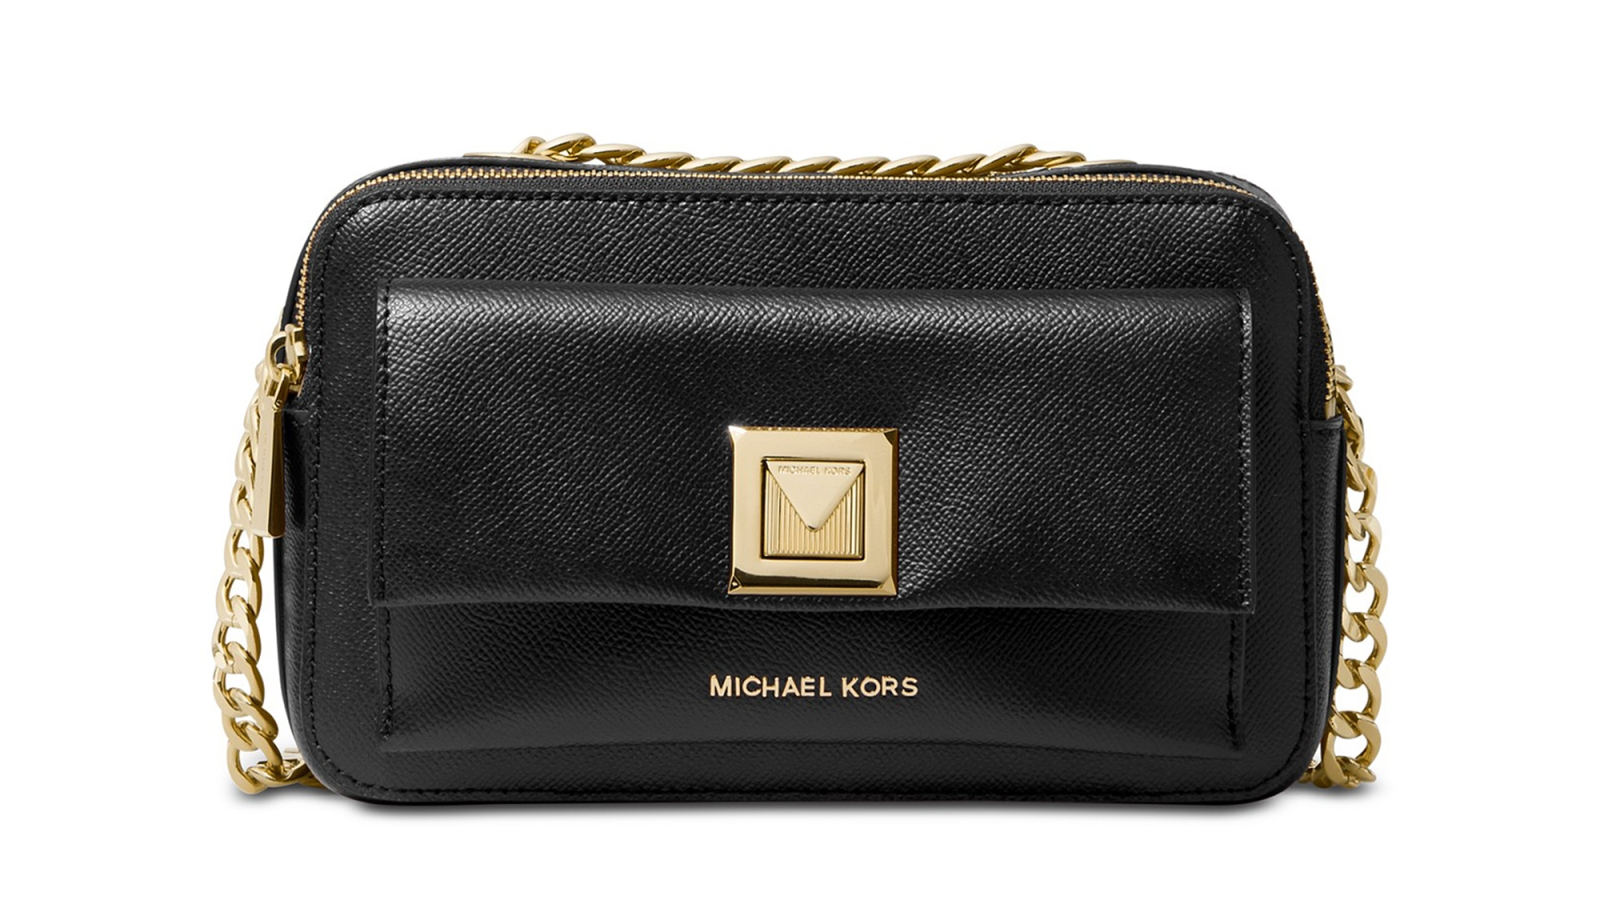 0a3a97536f41 This Michael Kors Crossbody Bag Is 60% Off and Now Under $100